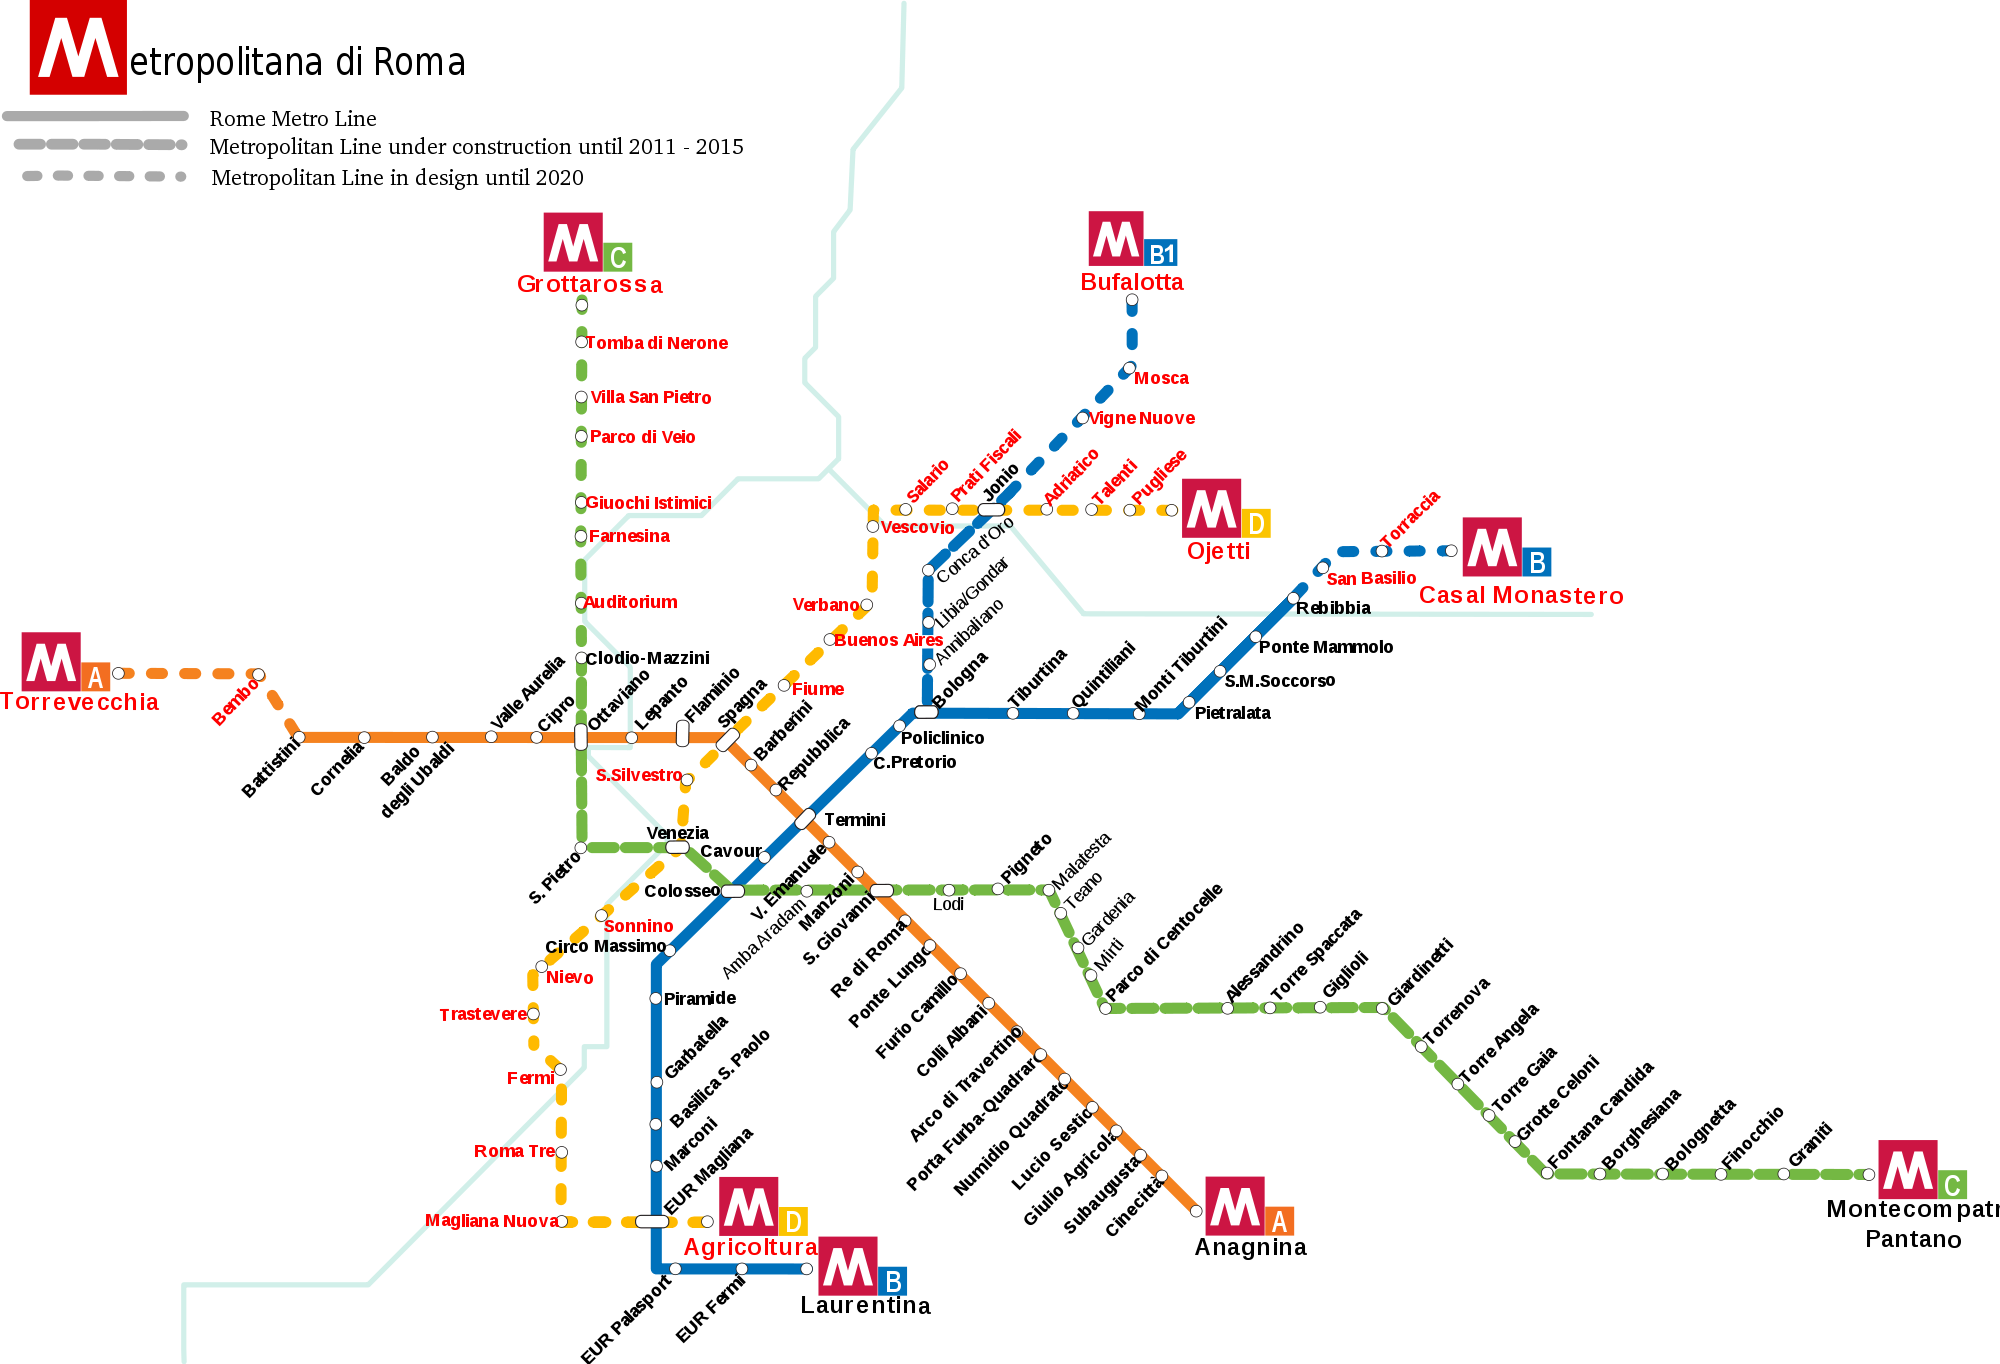 Metro De Roma Mapa.Metro De Roma Metros Undergrounds And Subways Maps